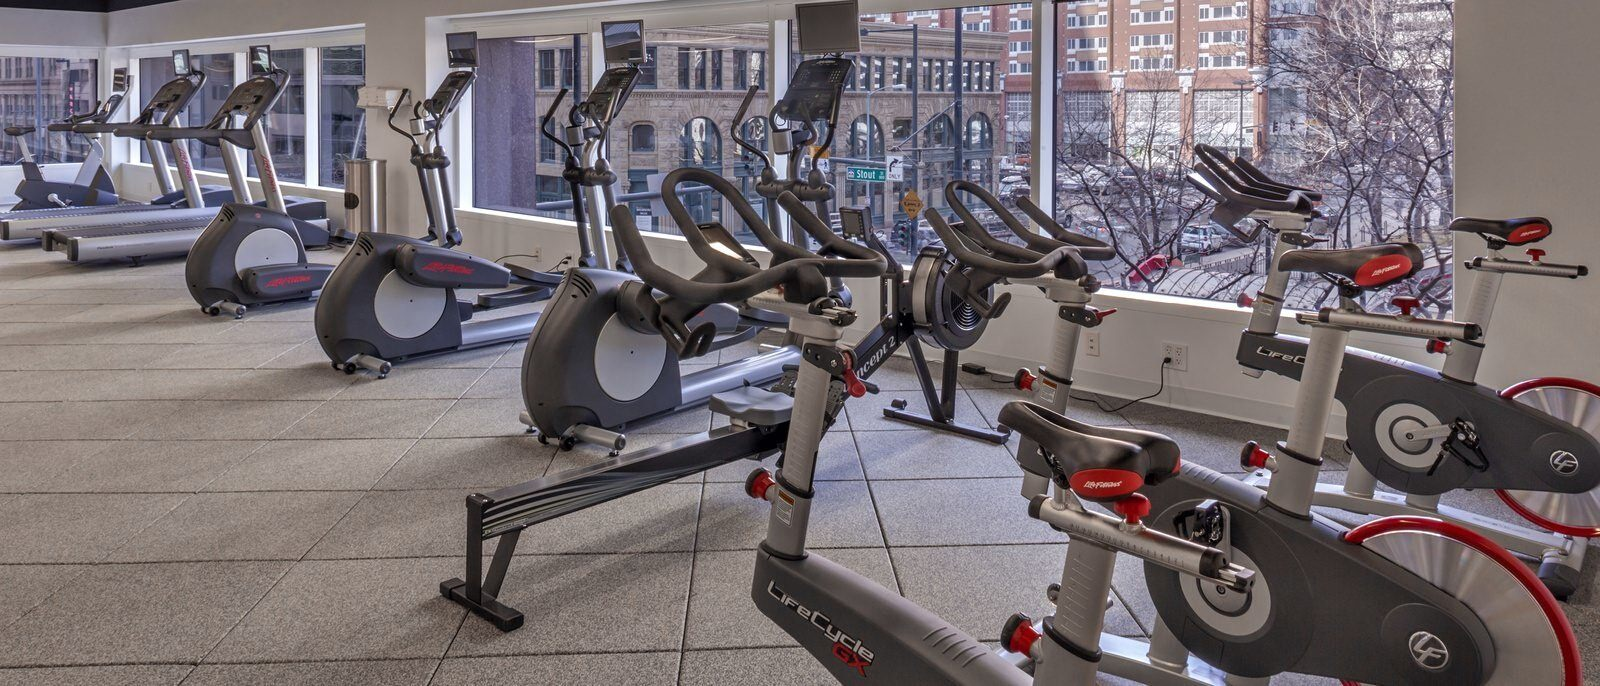 Inside of a gym with stationary bikes, ellipticals, and treadmills that look out onto a city street.